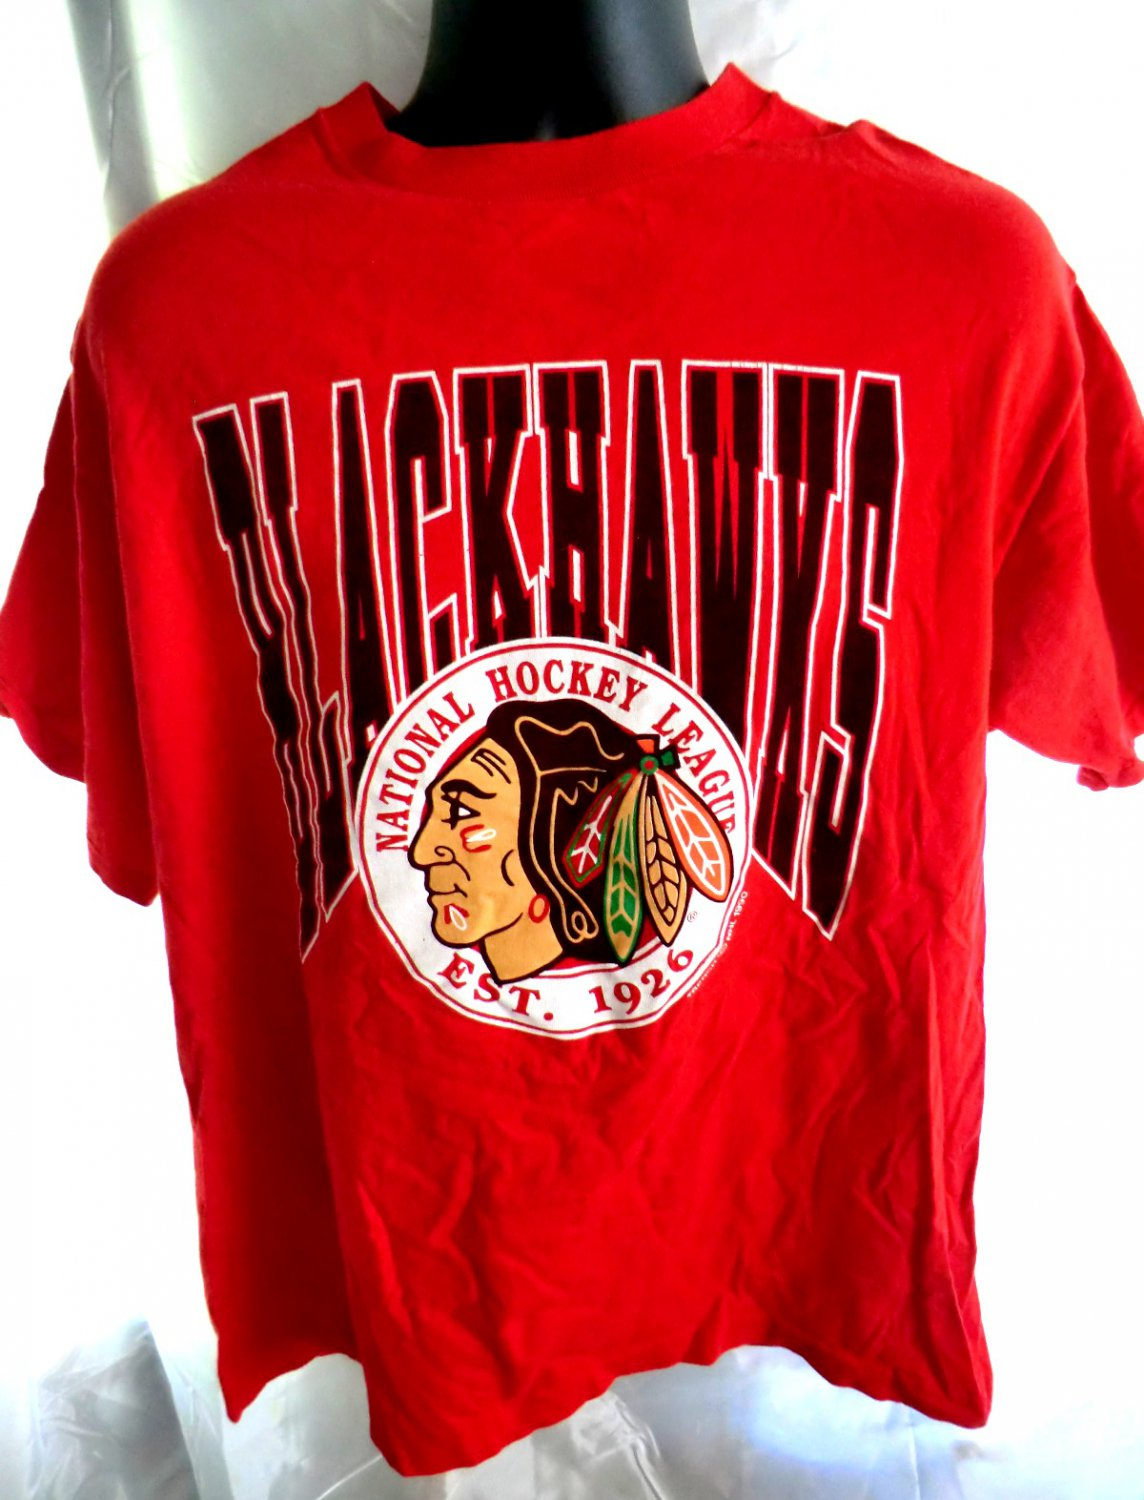 Vintage 1990 blackhawks t shirt size large for Vintage blackhawks t shirt